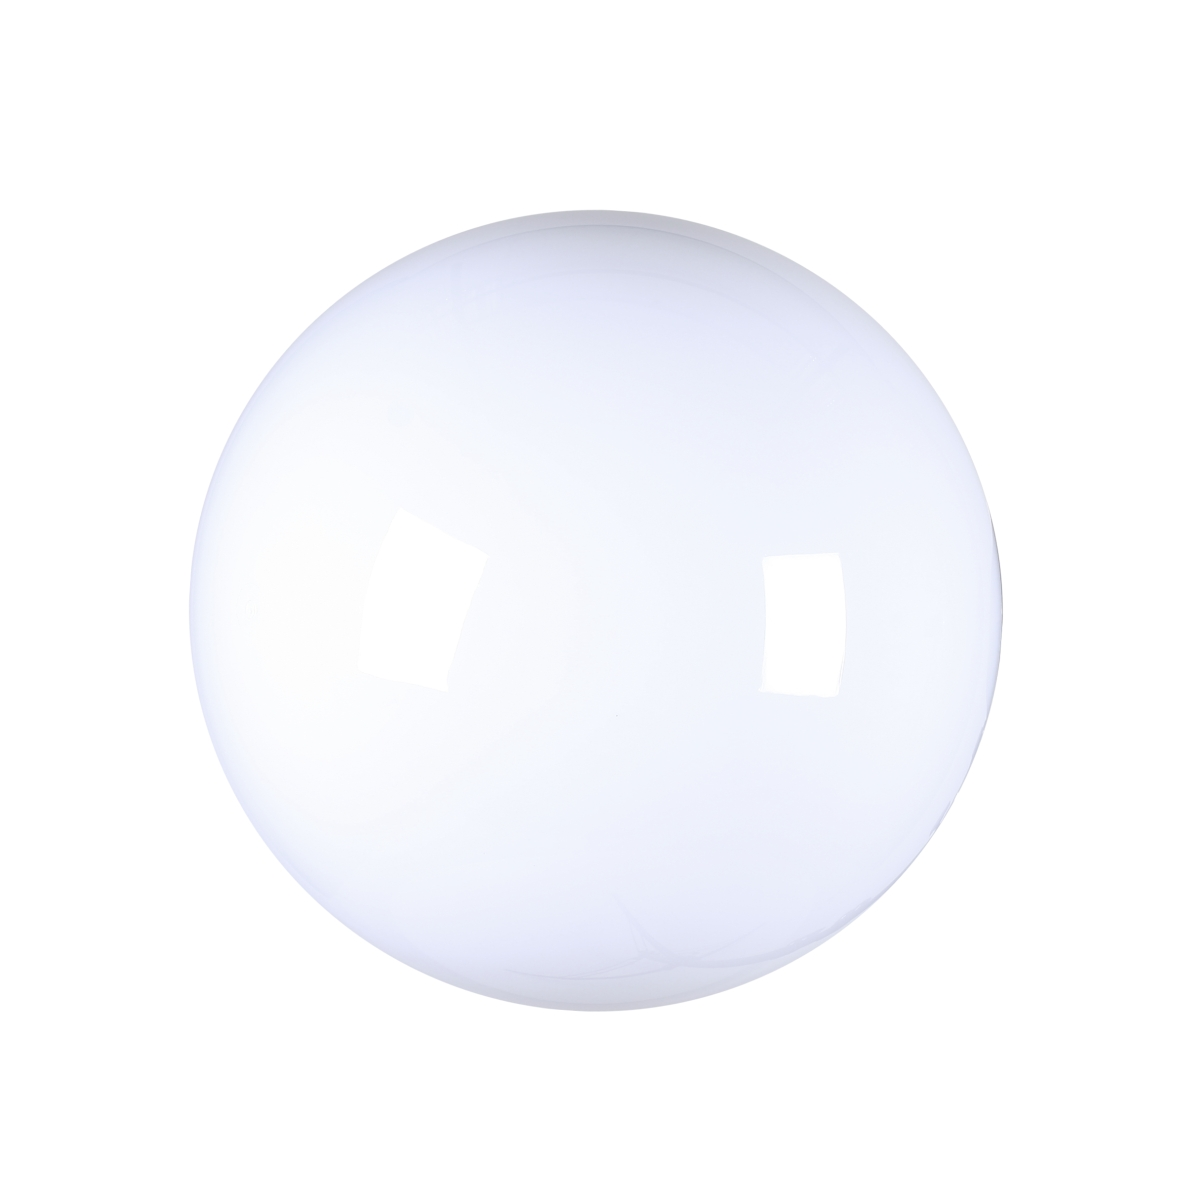 Walimex Spherical Diffuser w. Univ. Adapter System